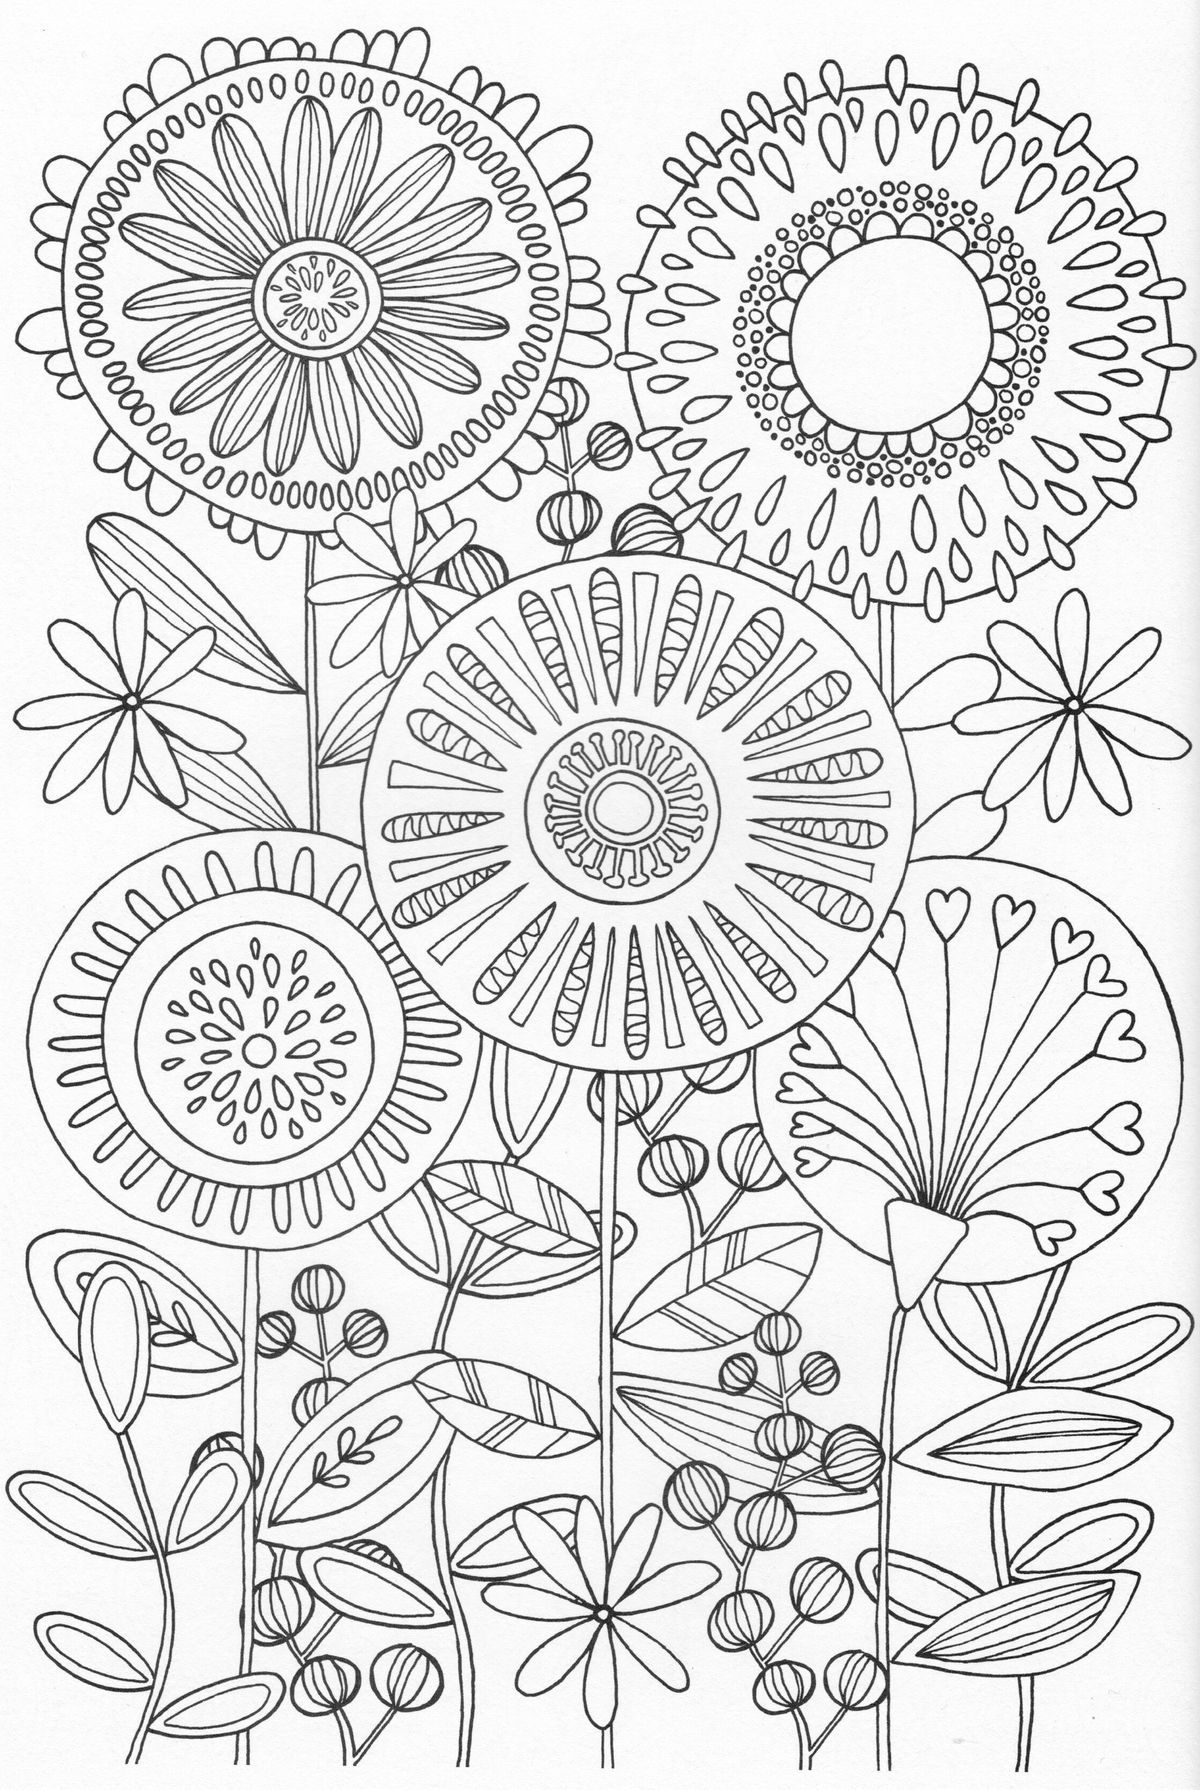 Nature Mandala Coloring Pages  to Print 19i - Free Download